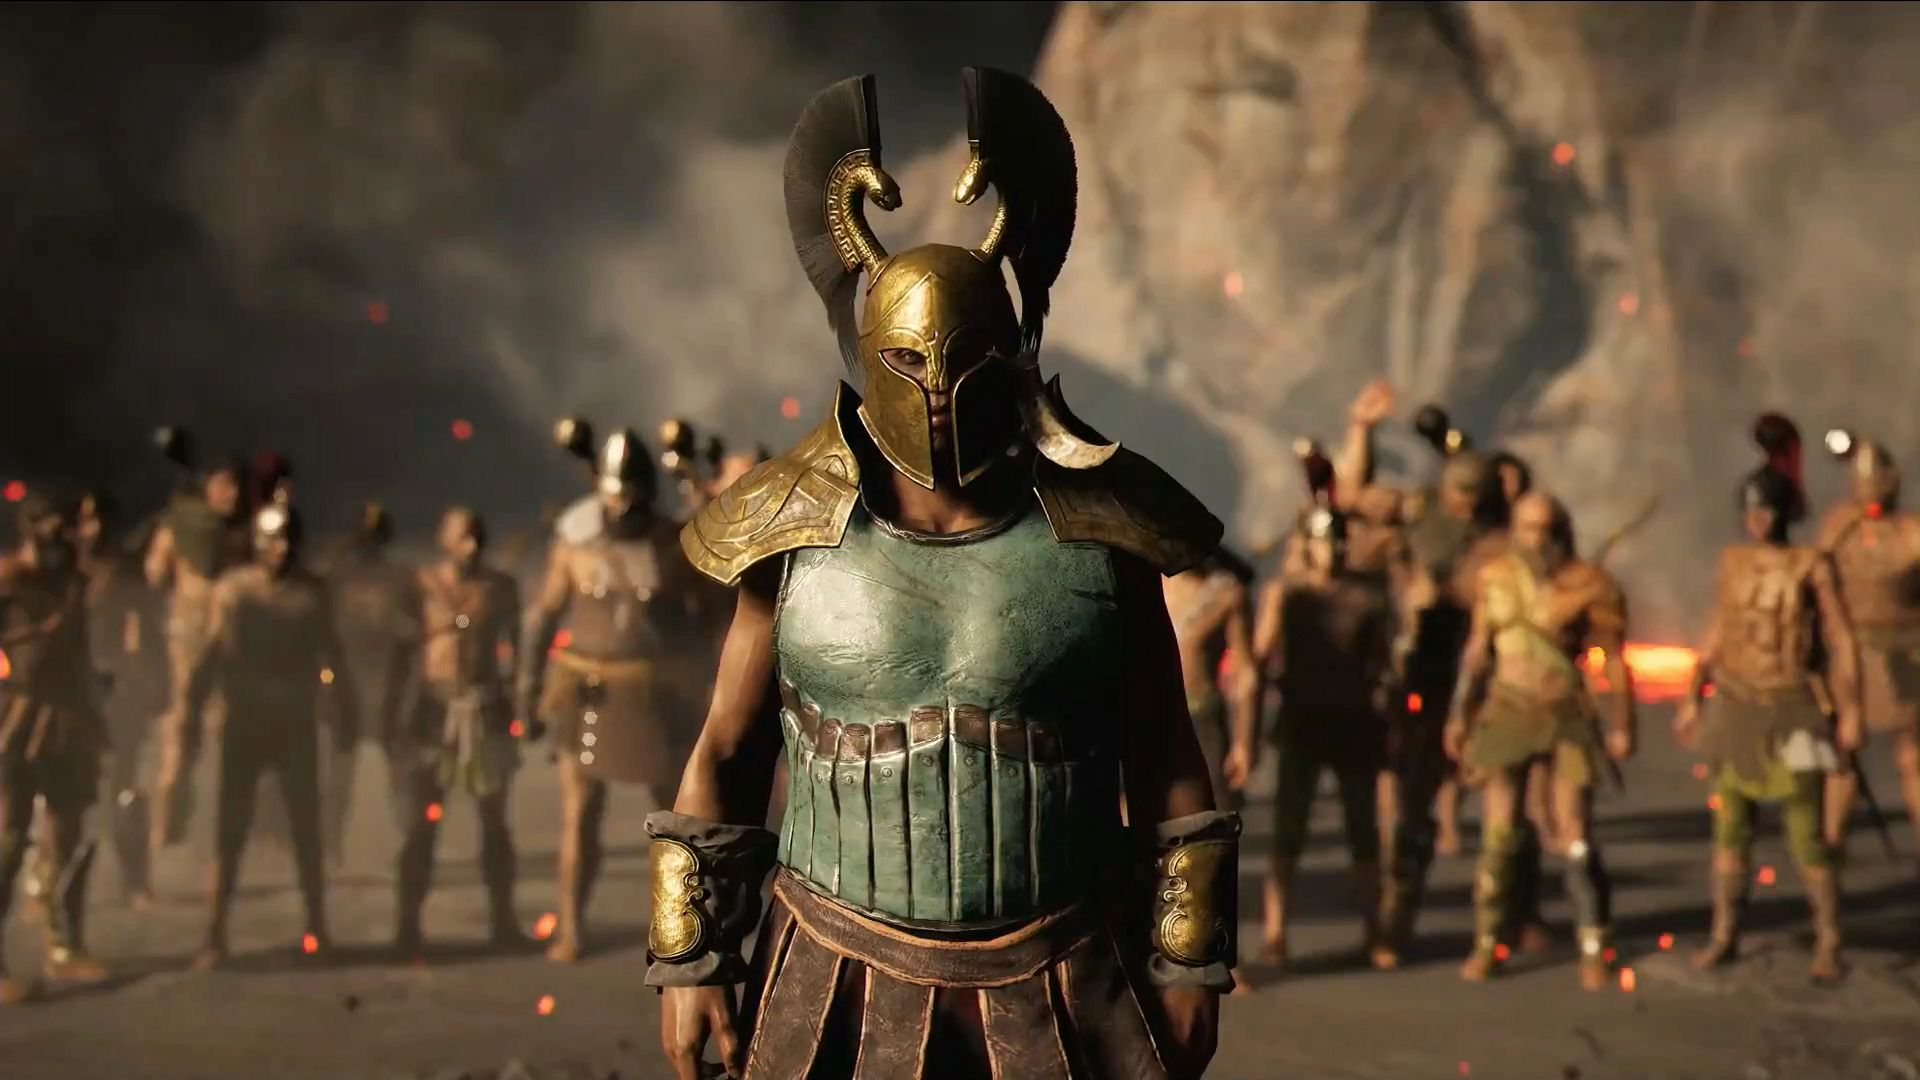 Assassin S Creed Odyssey Gameplay Trailer Debuts At E3 2018 Polygon